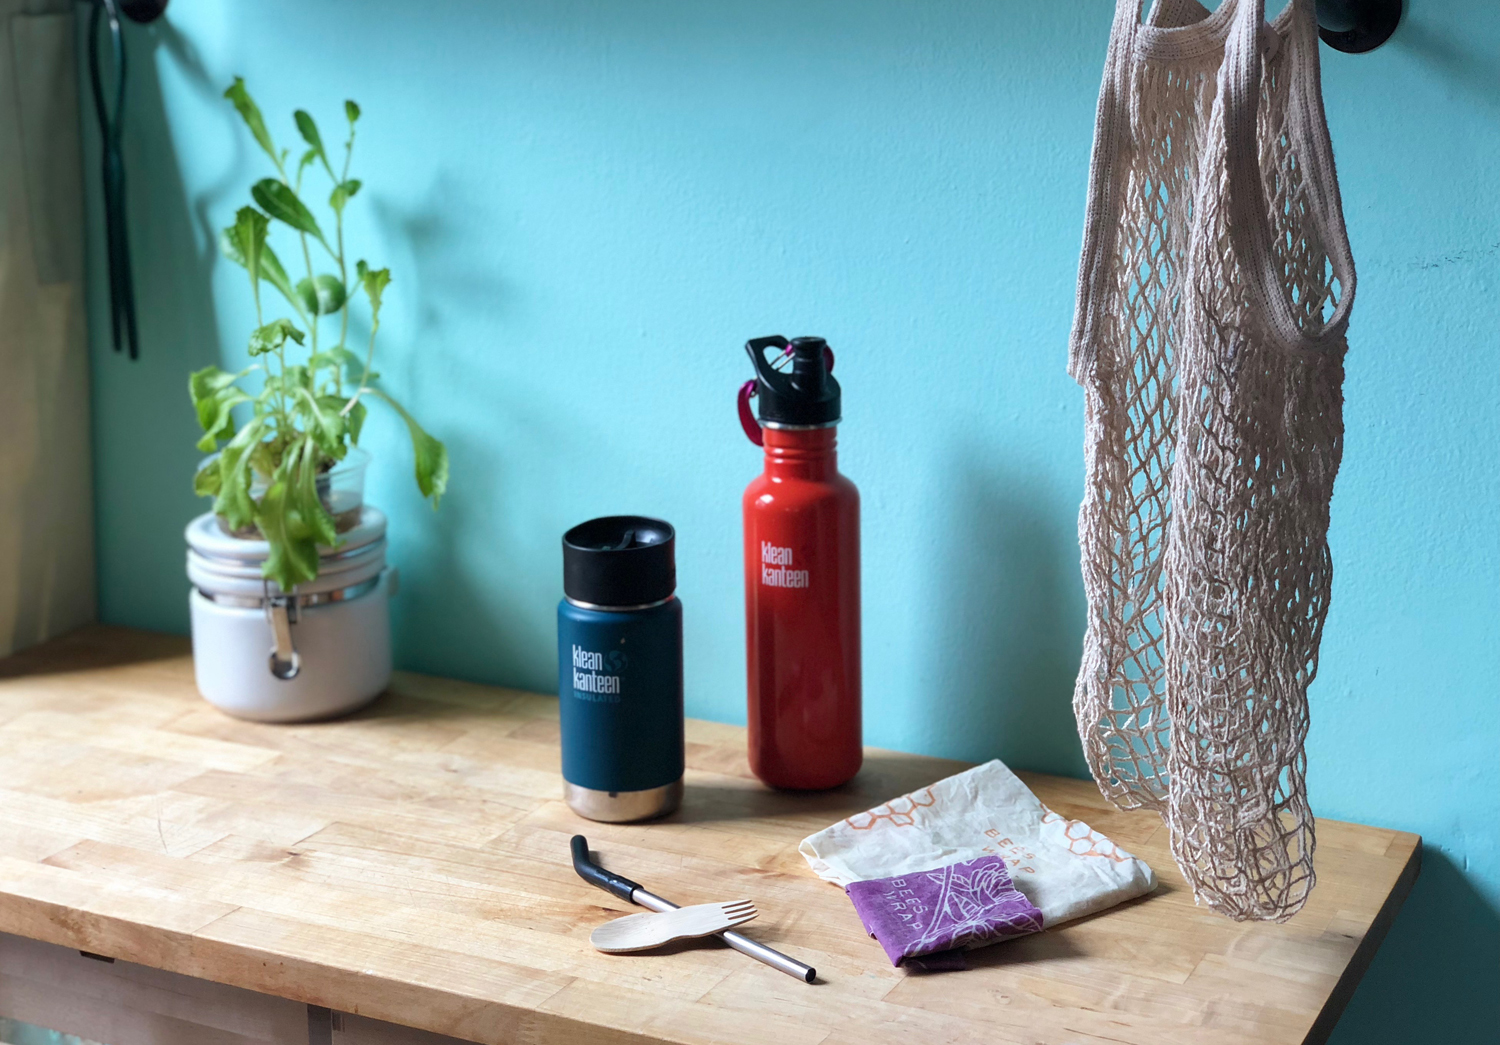 My go-kit of reusable items that help me reduce my plastic waste on a daily basis.